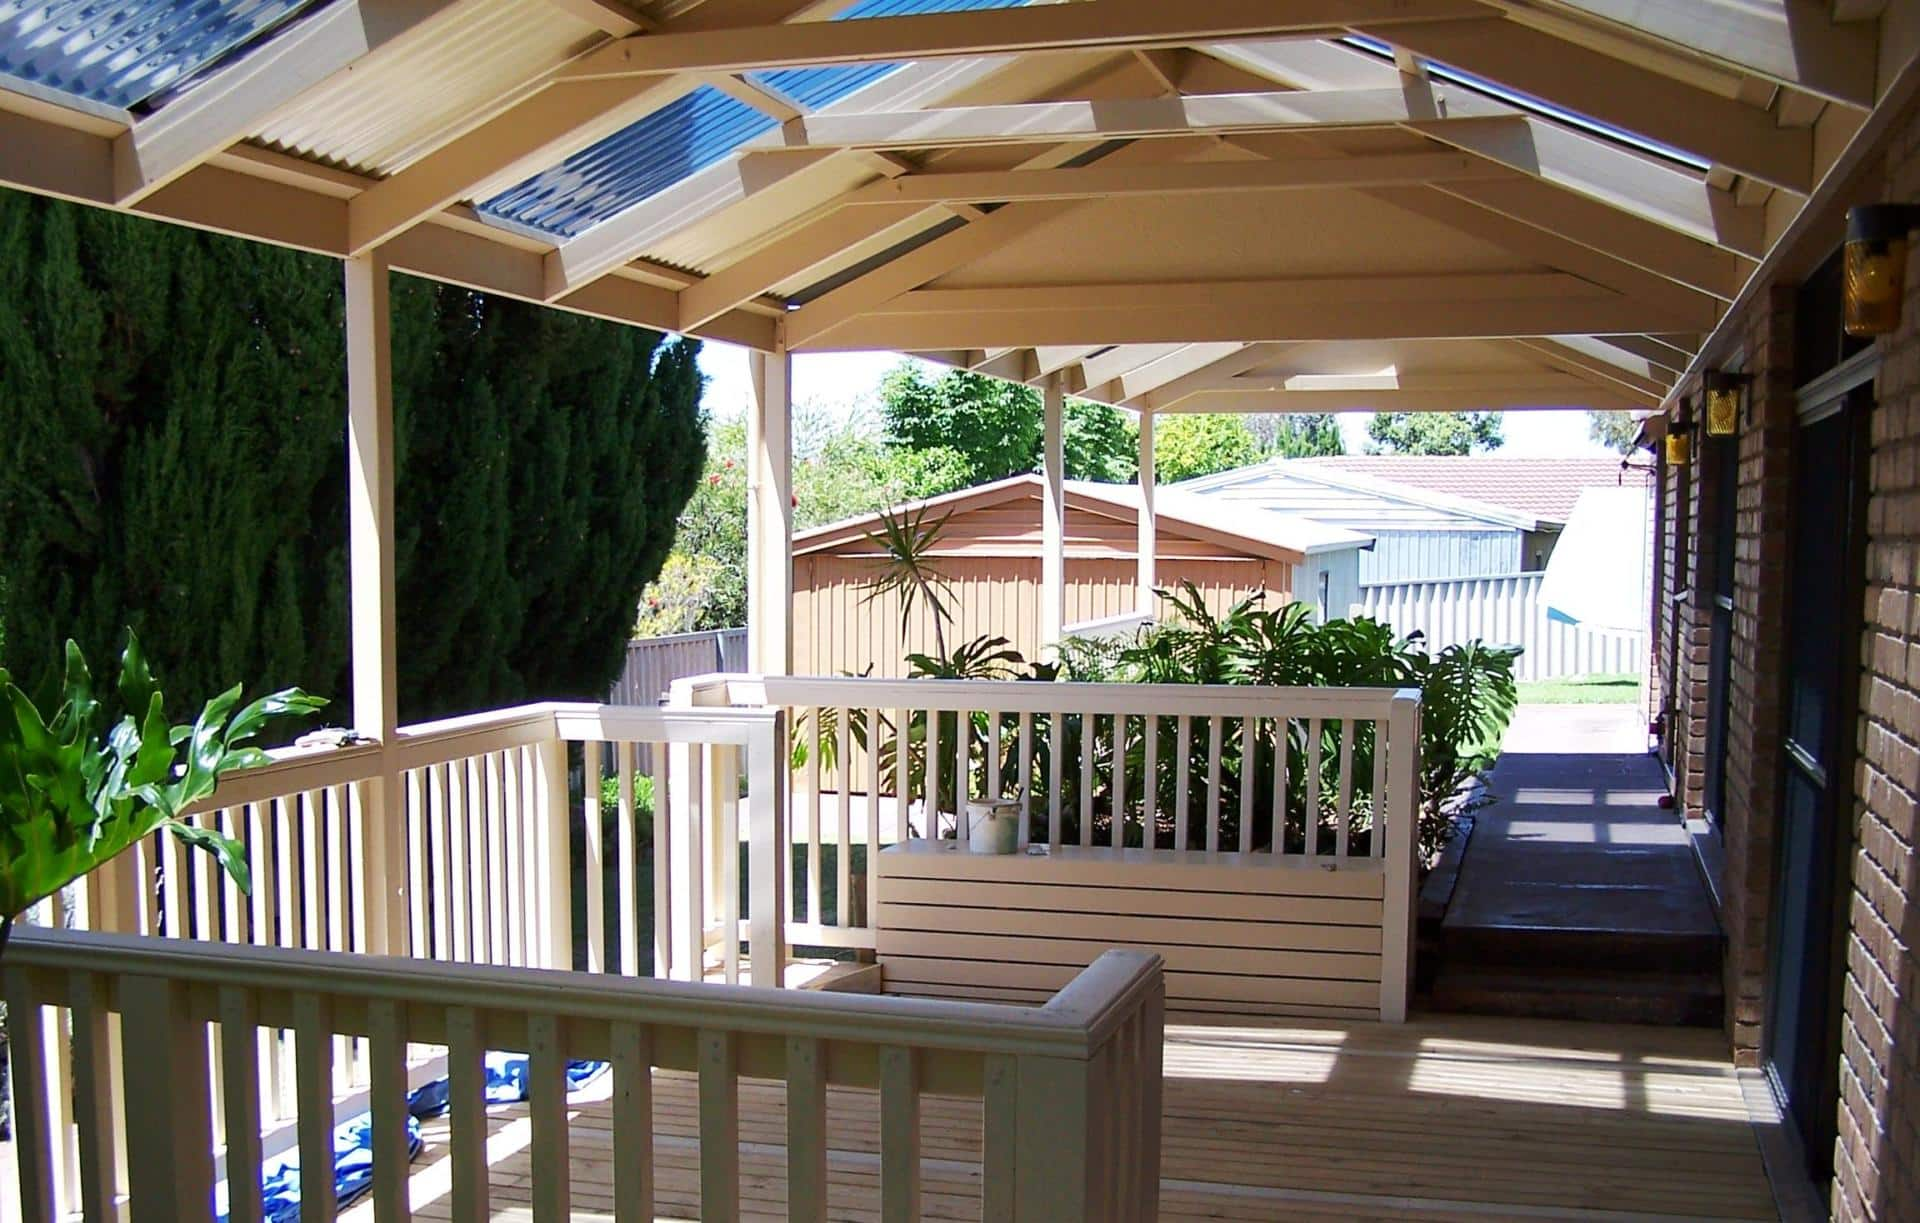 Winter-Proof Your Outdoor Space - Create Shelter for your Outdoor Area, Australian Outdoor Living.